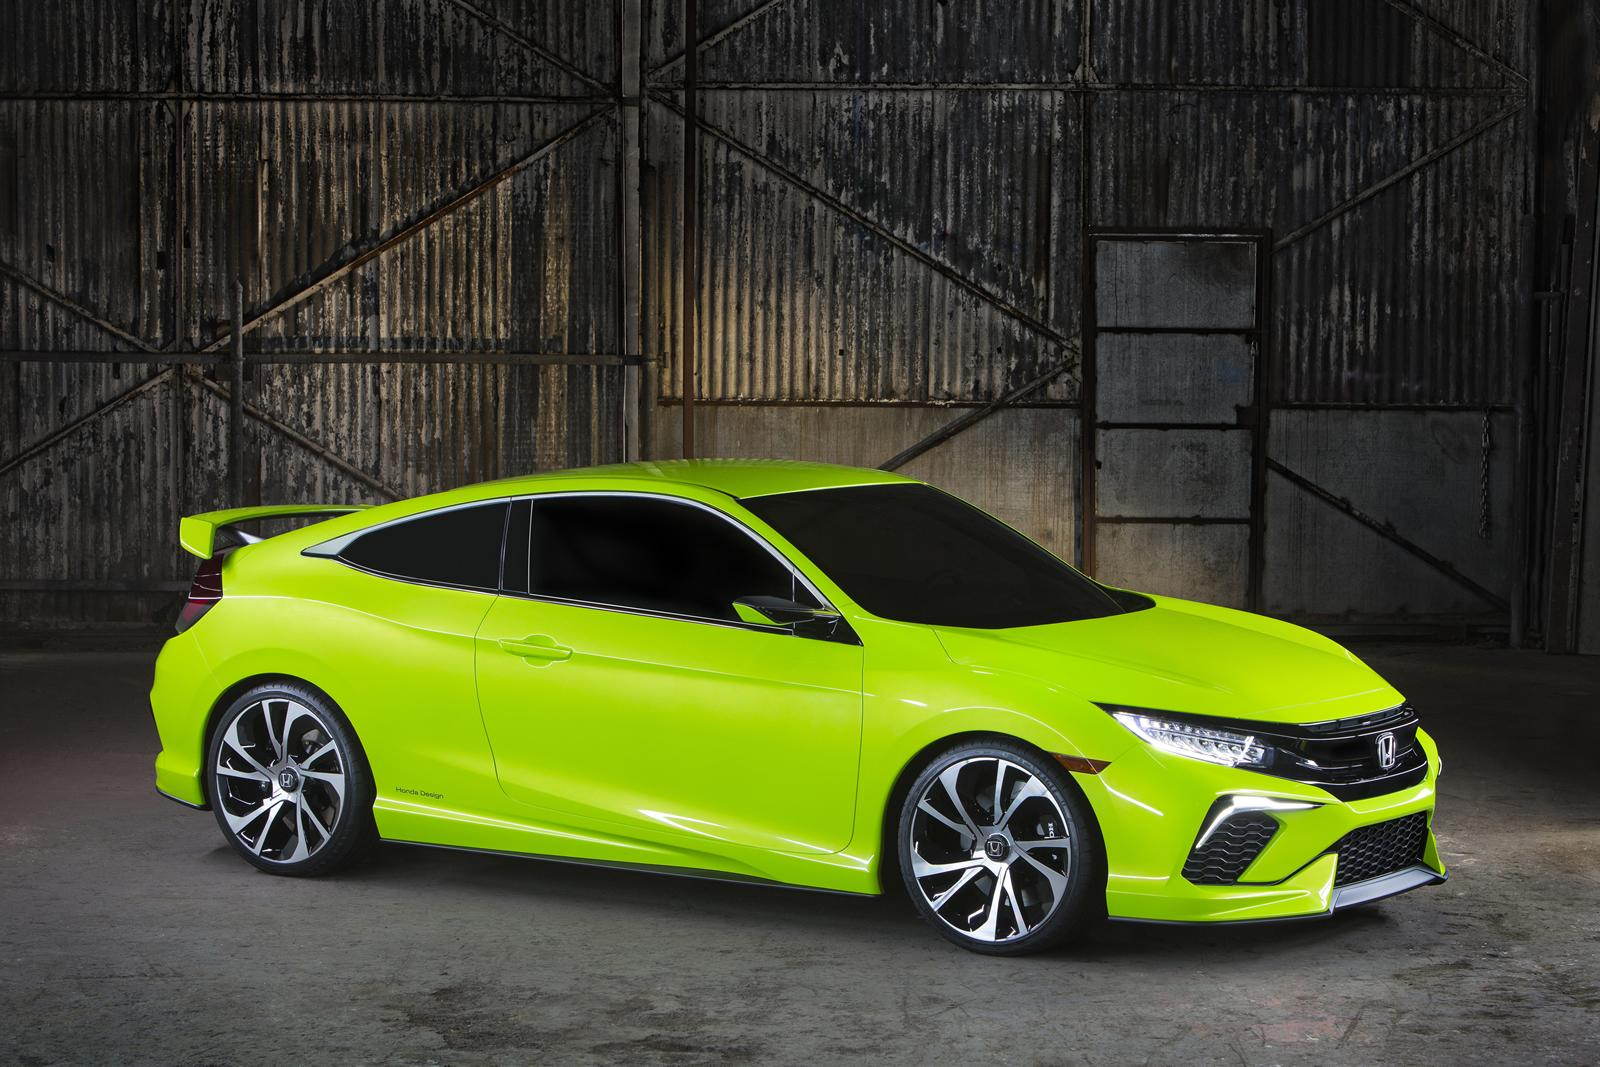 Honda Civic Concept makes surprise appearance in New York - ForceGT ...